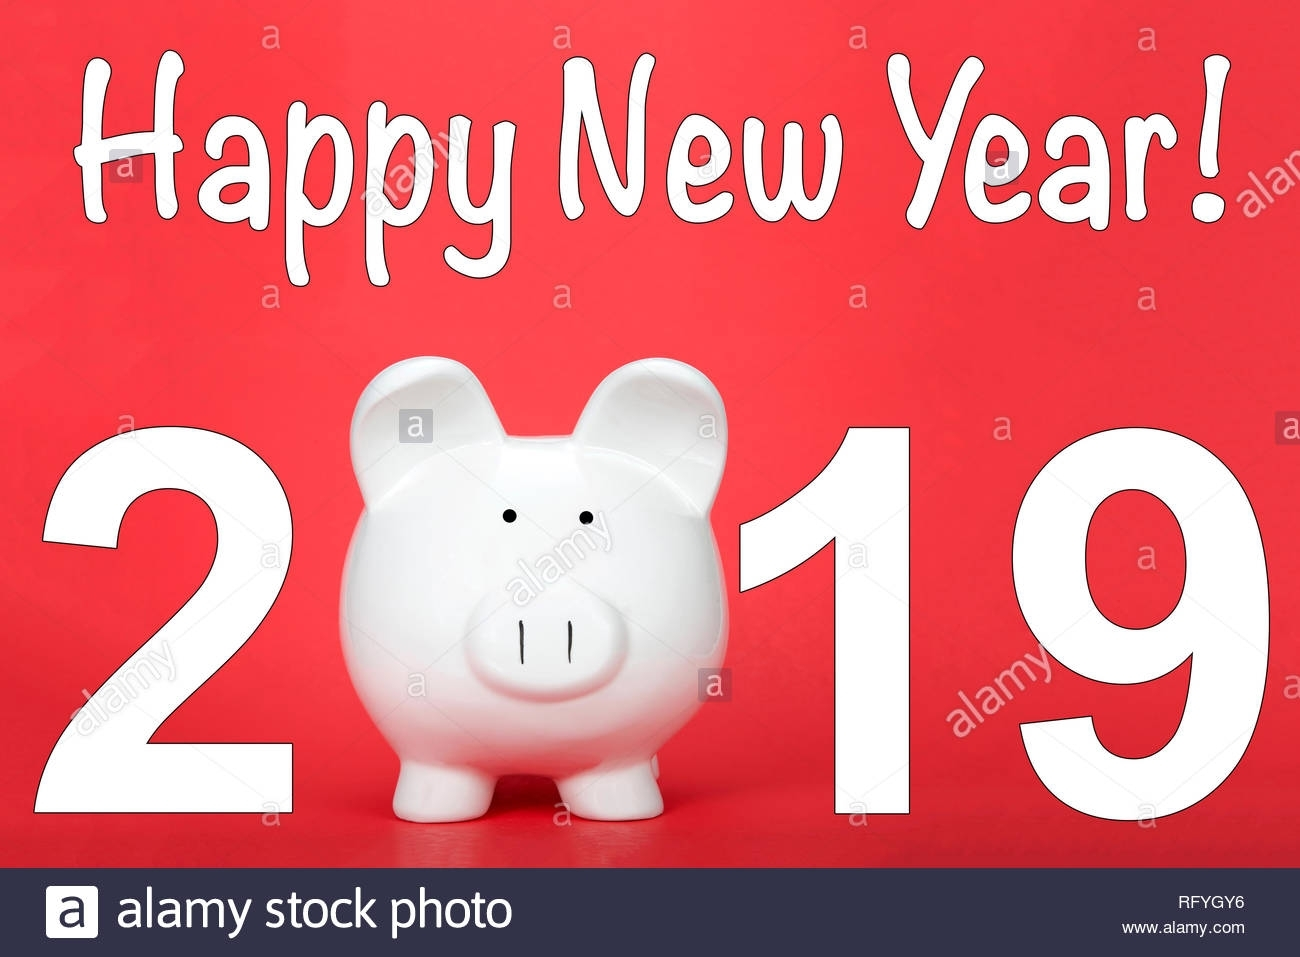 Happy Chinese New Year, The Year Of The Pig. Piggy Bank For